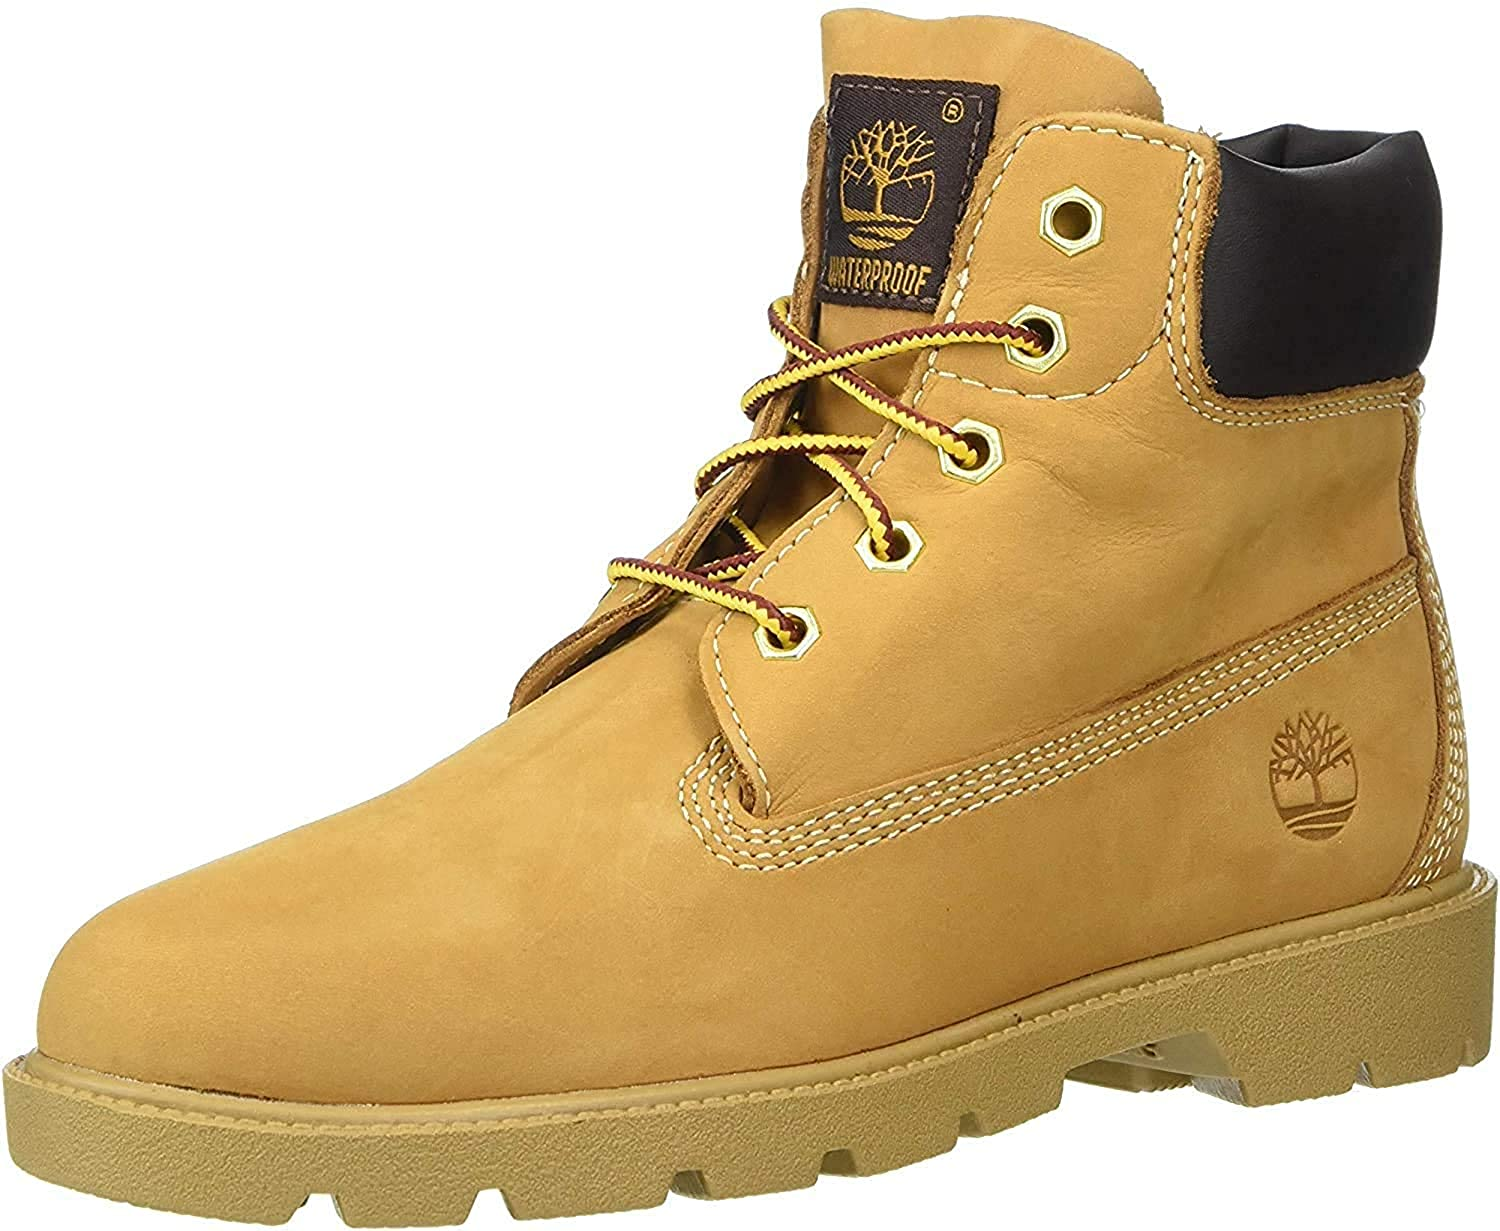 Timberland Baby 6 in Classic Boot